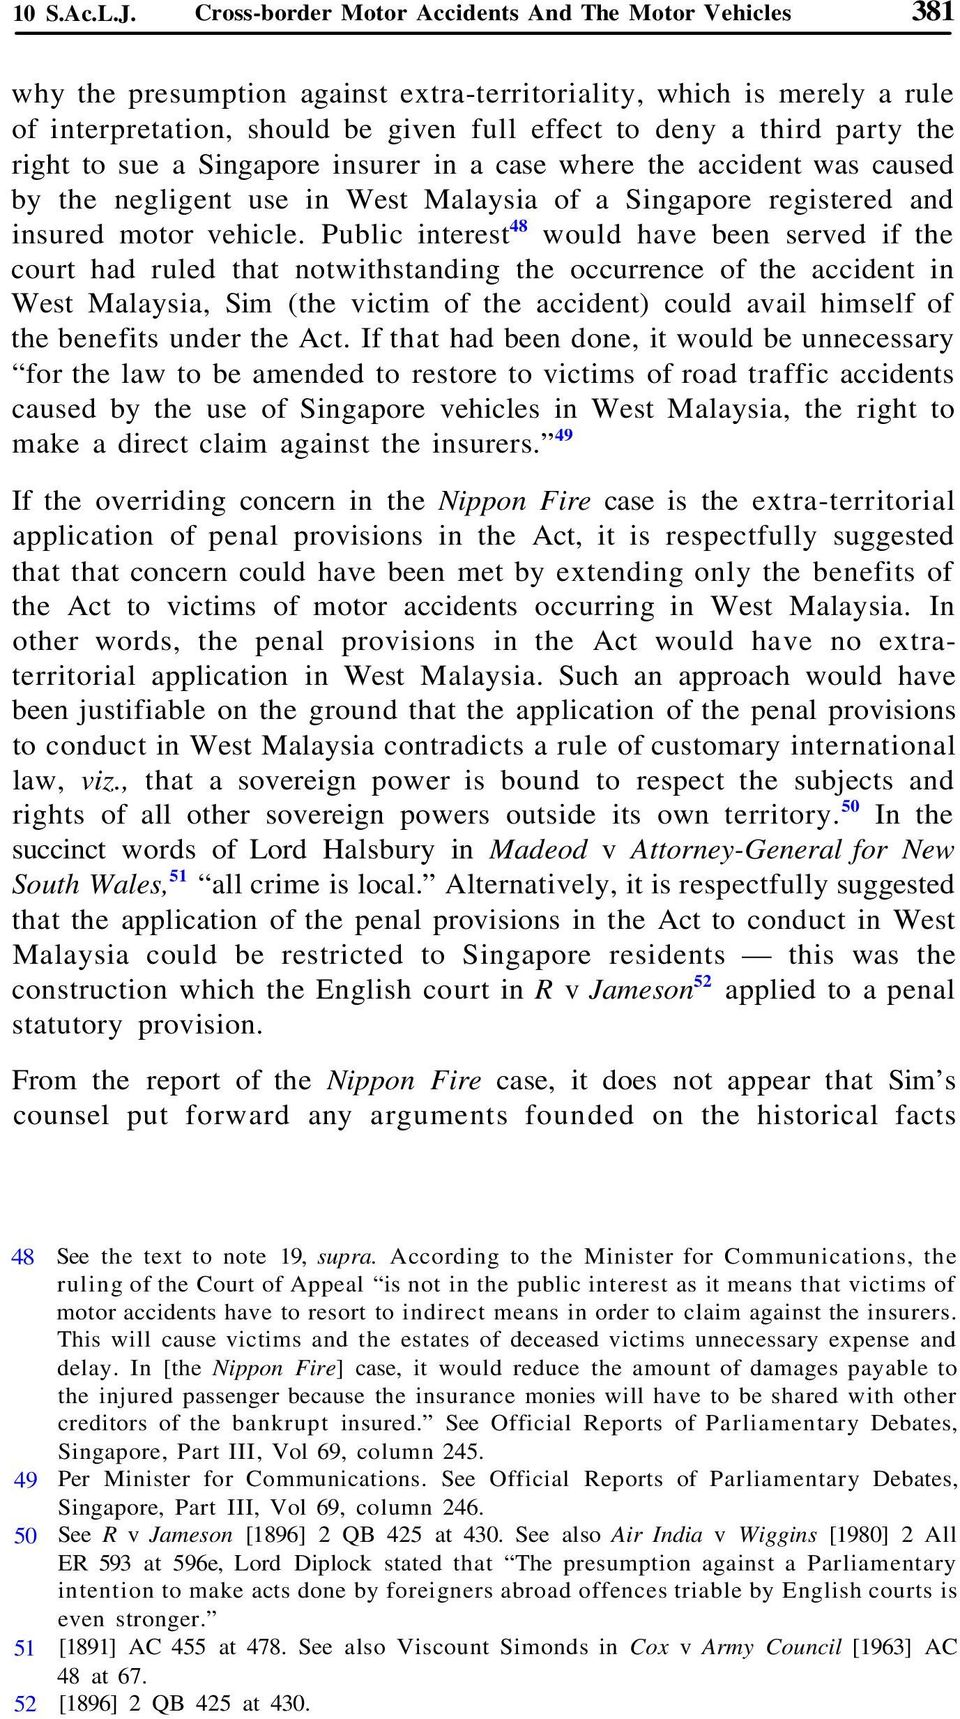 the right to sue a Singapore insurer in a case where the accident was caused by the negligent use in West Malaysia of a Singapore registered and insured motor vehicle.